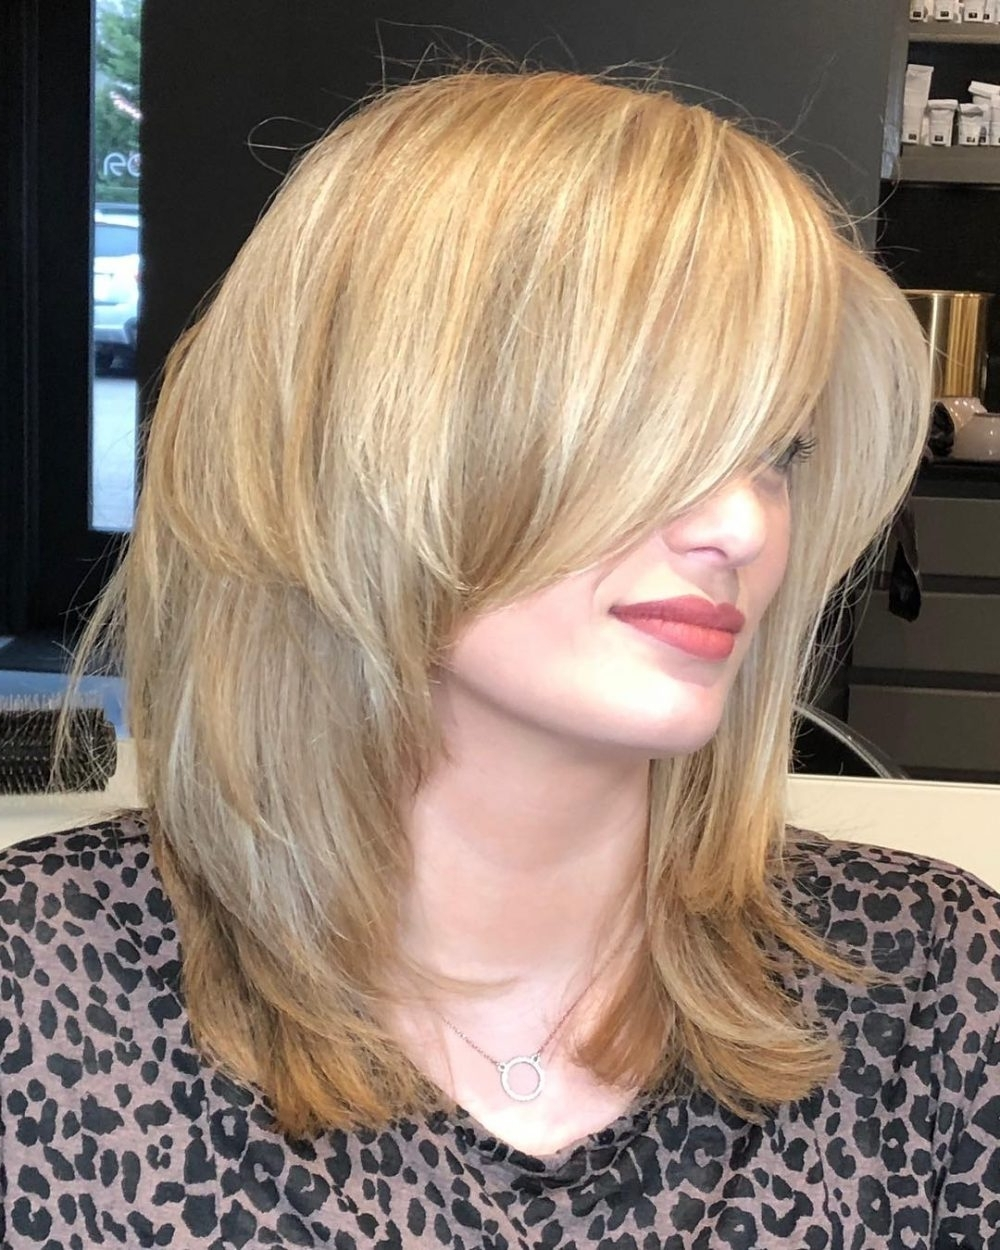 23 Perfect Medium Hairstyles For Square Faces In 2021 40+ Awesome Razored Hairstyles For Medium Hair